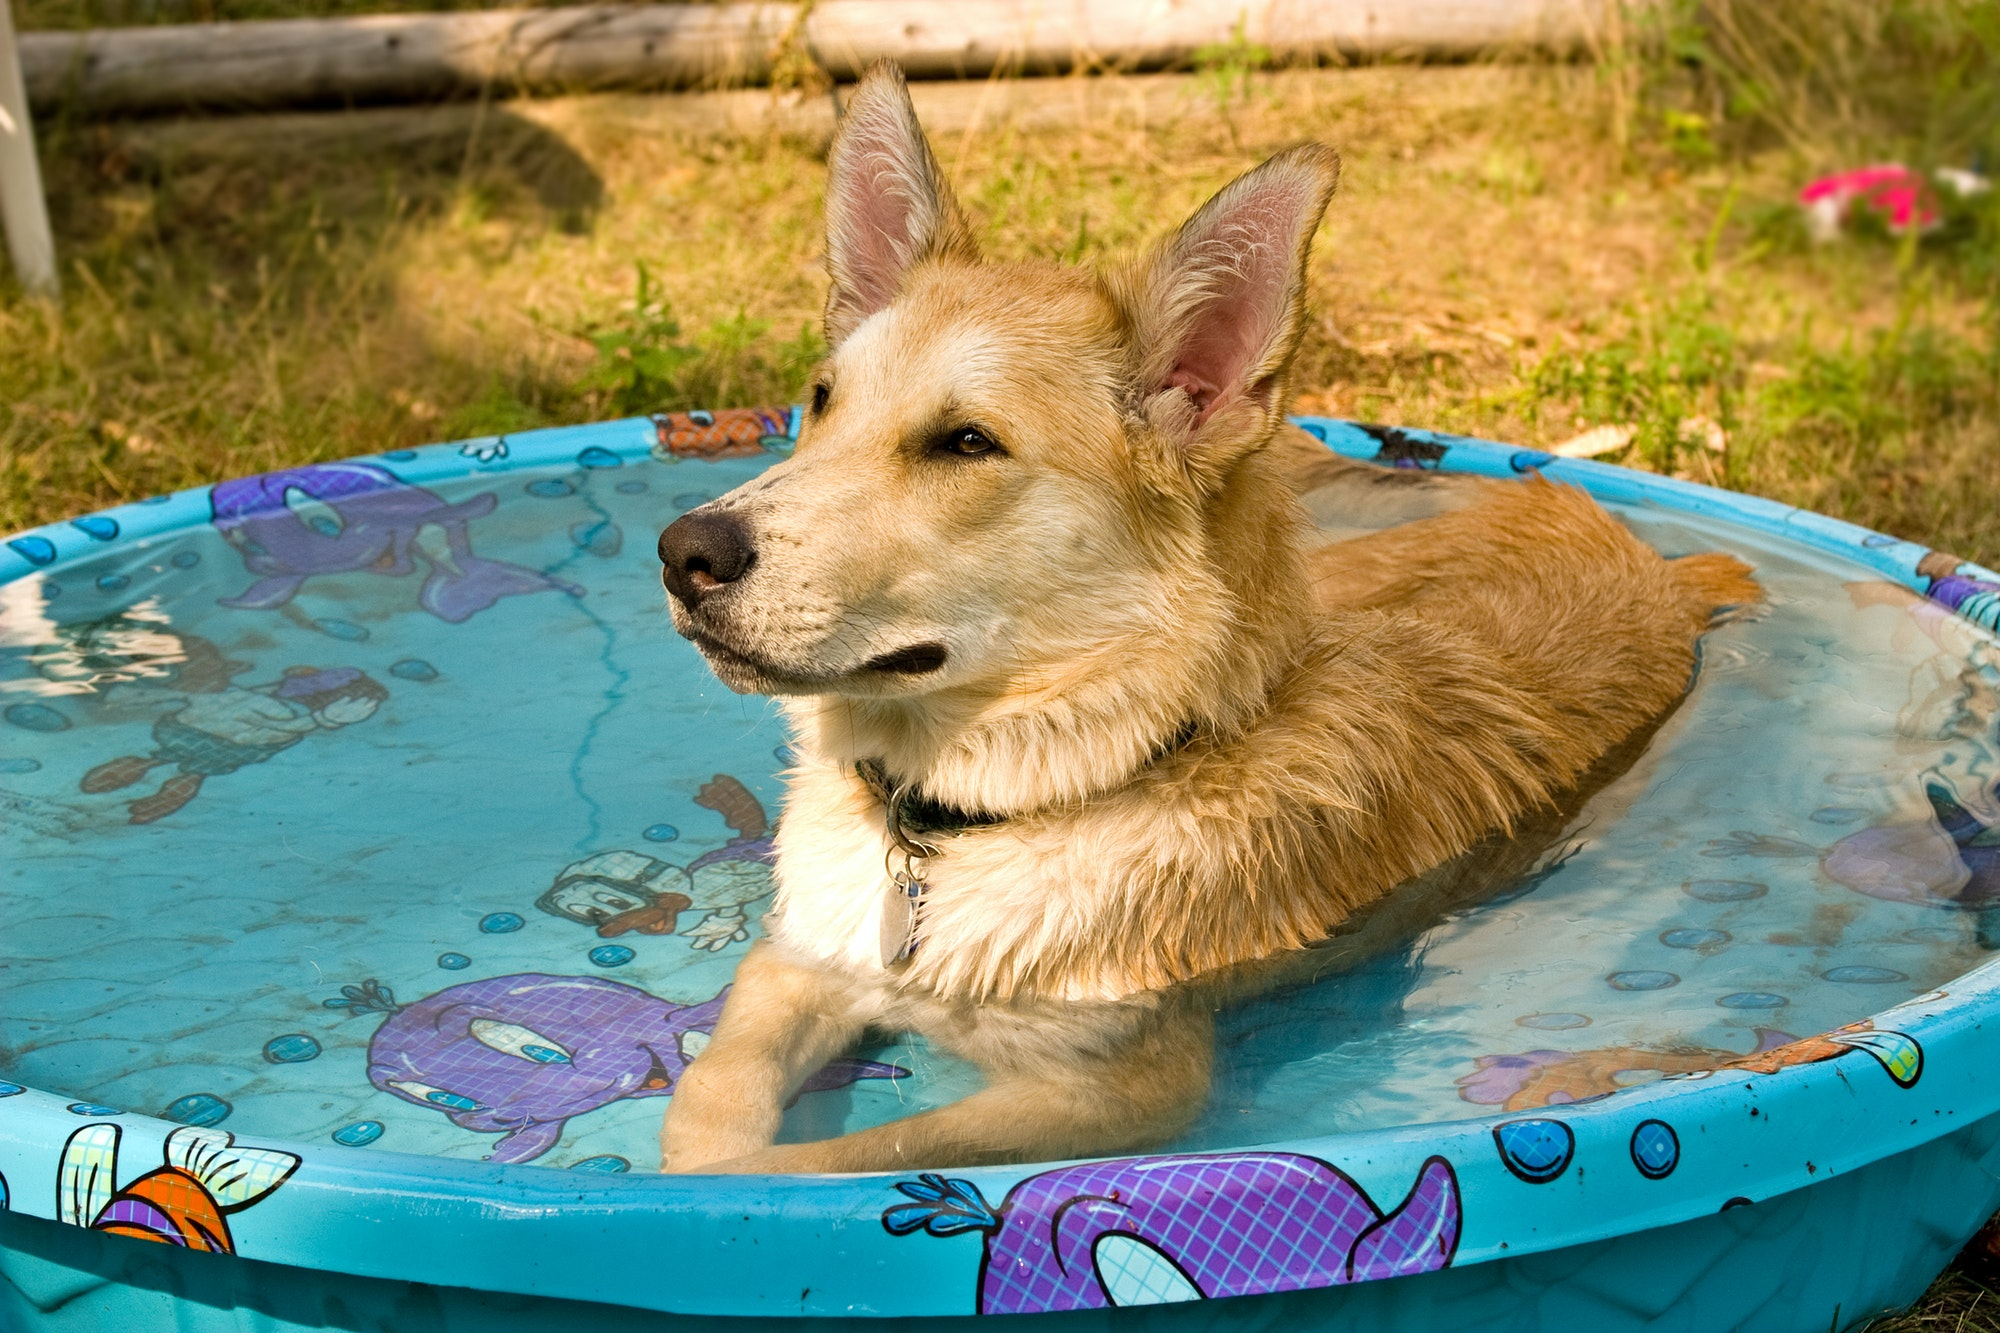 Dog in kiddie pool that is holding standing water